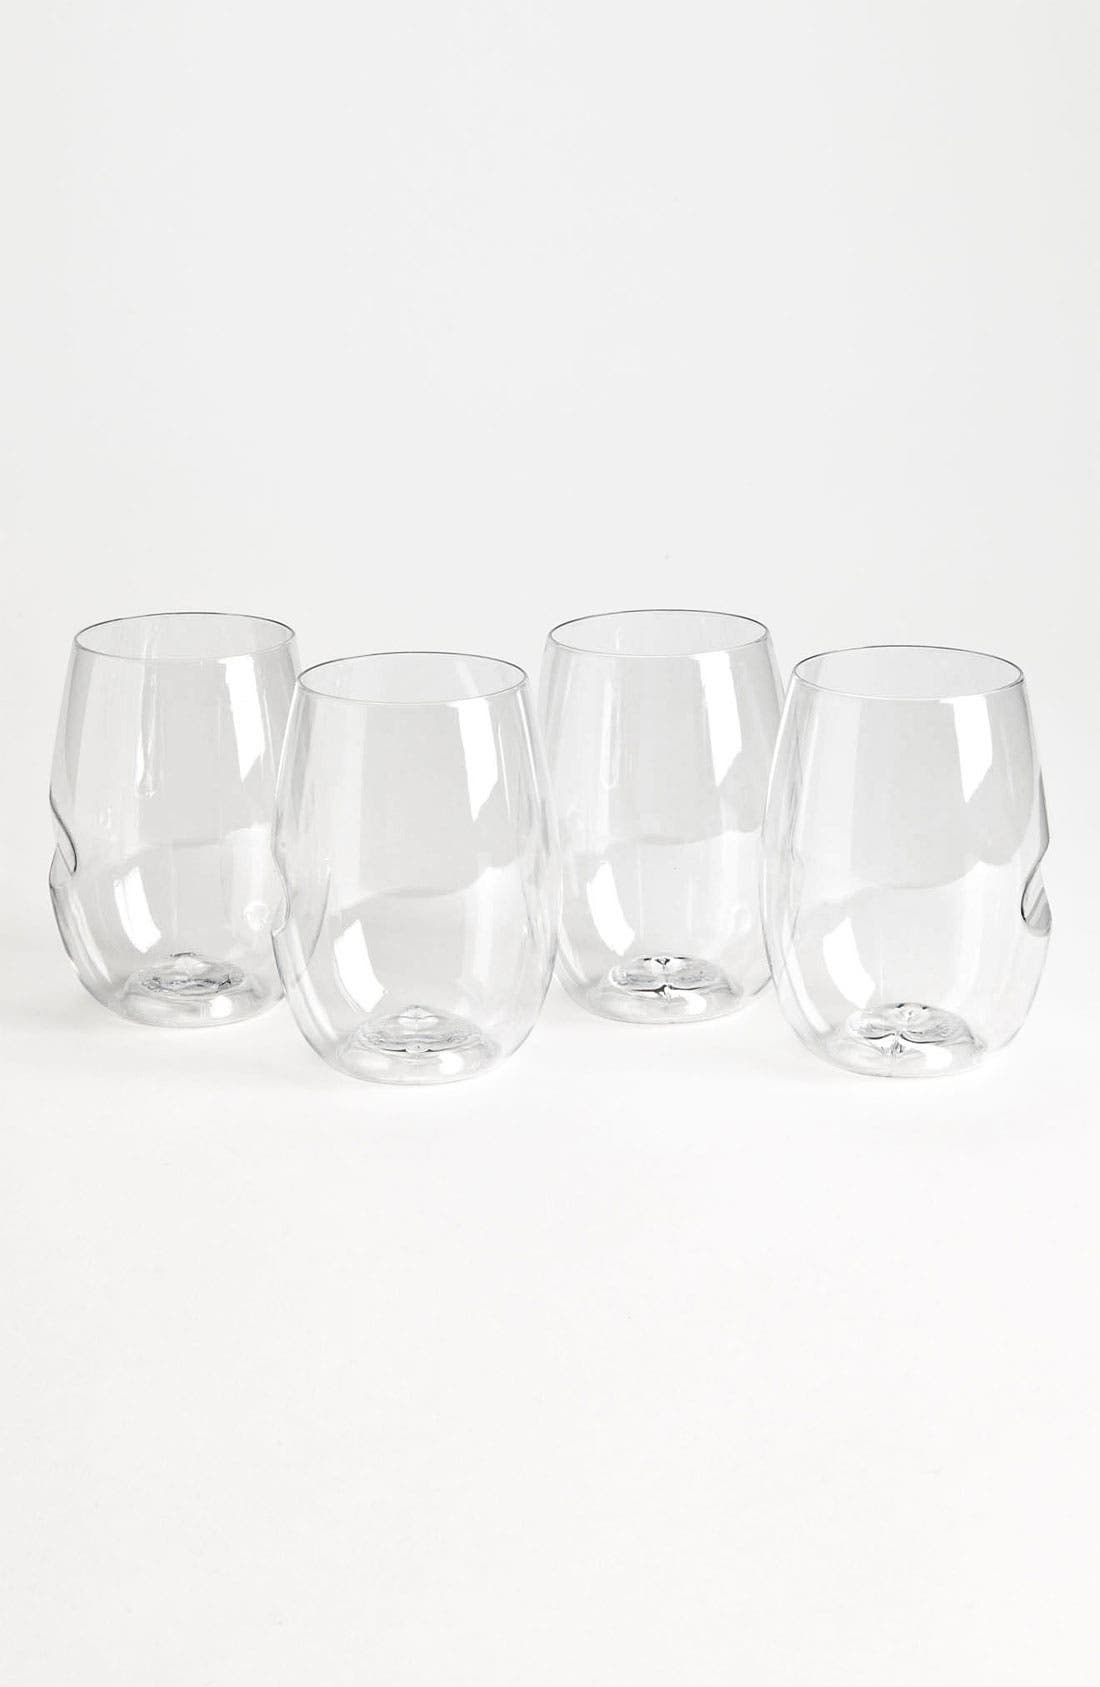 Alternate Image 1 Selected - Picnic Wine Glasses (Set of 4)